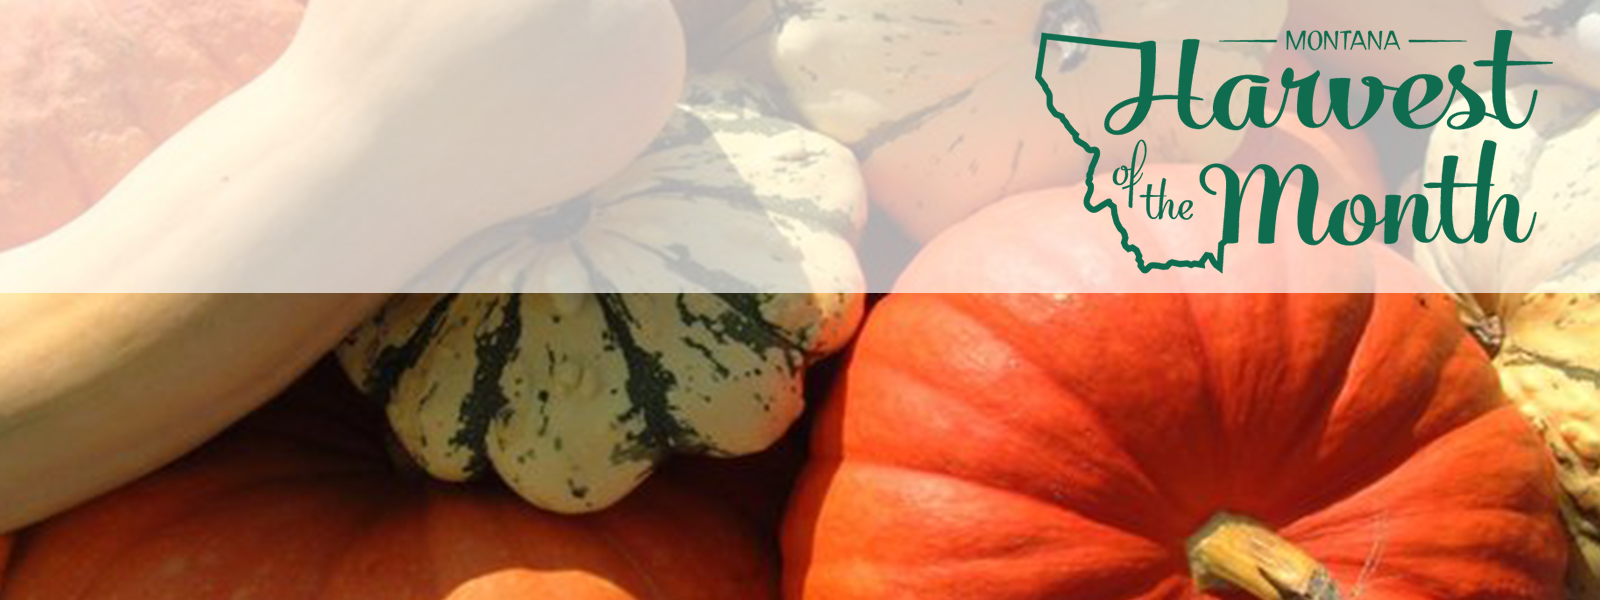 Enjoy winter squash as this month's Harvest of the Month!